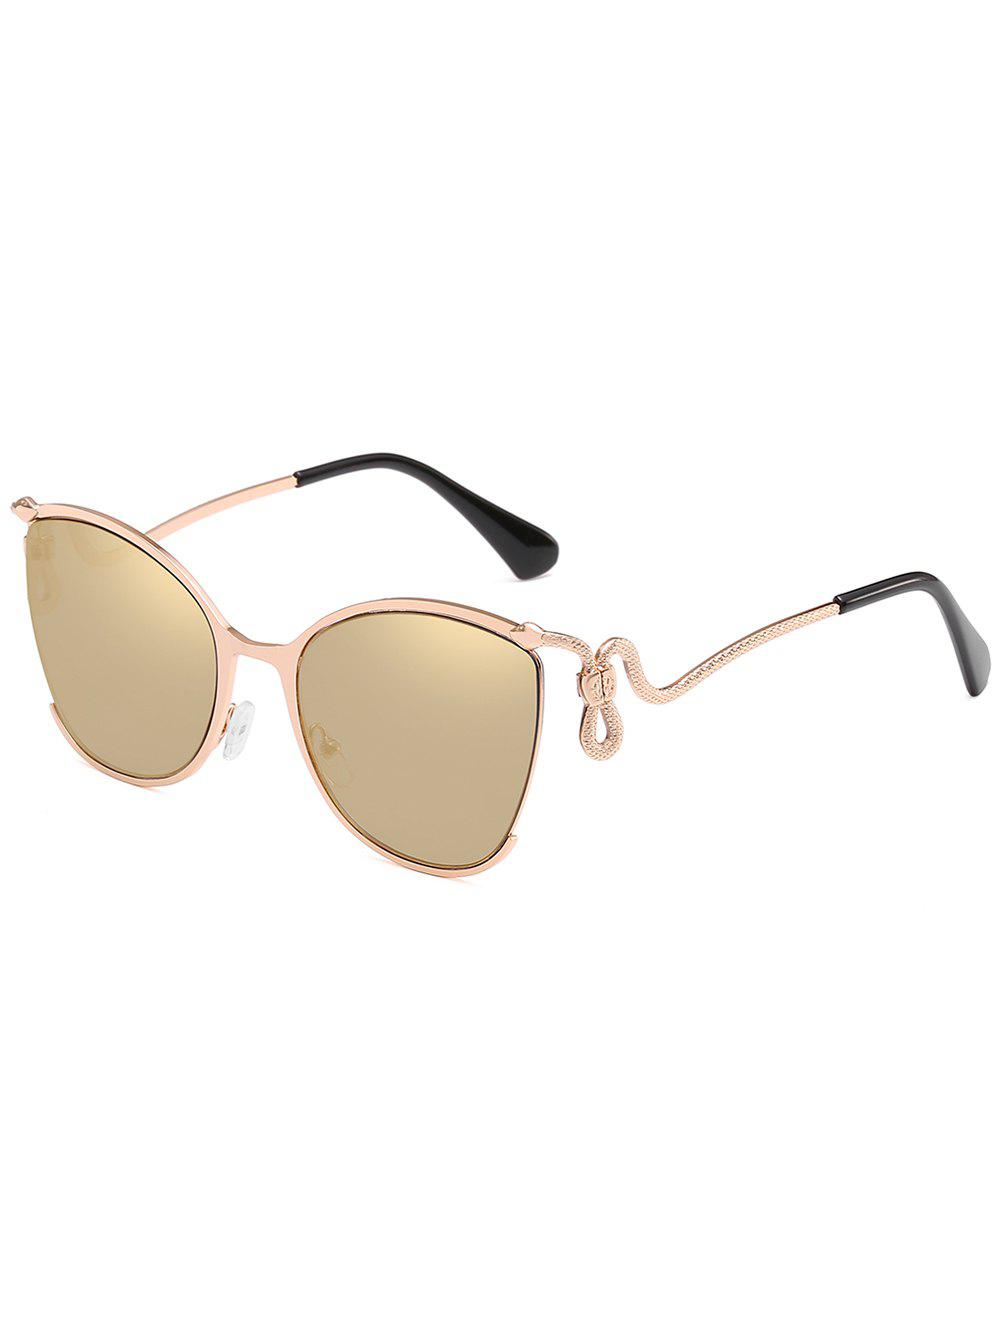 Buy Unique Half Frame Bent Legs Sunglasses